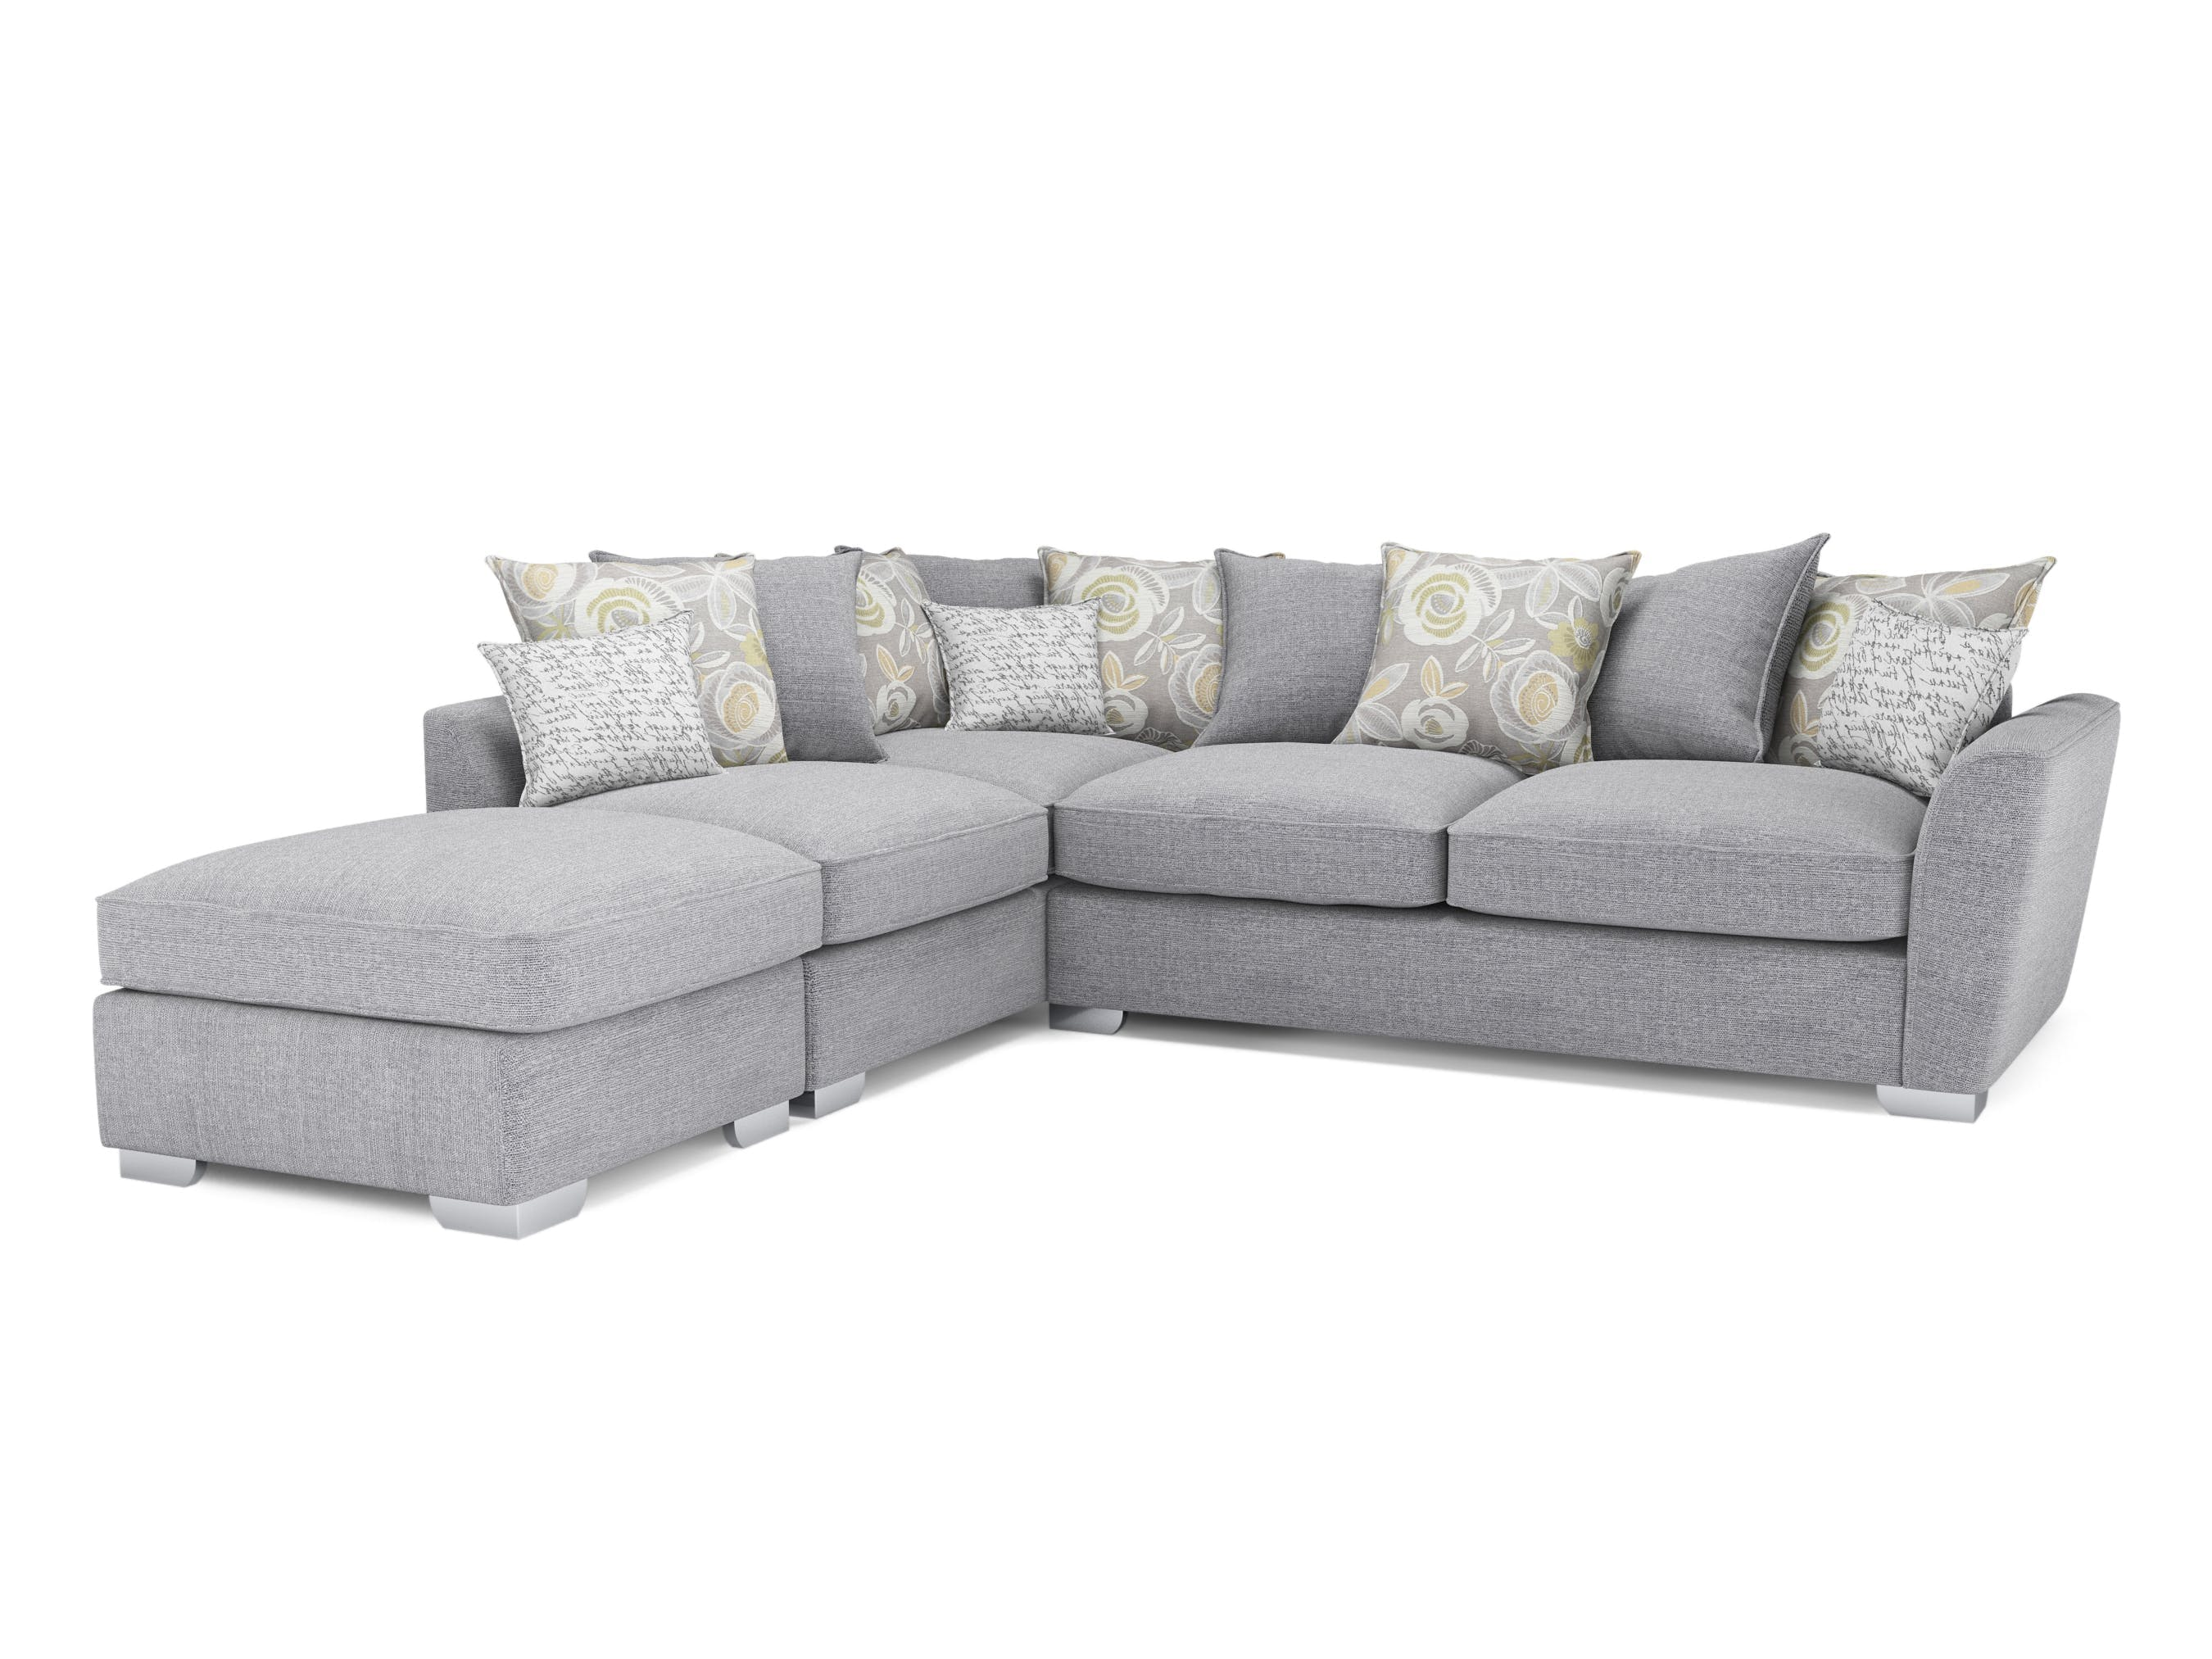 Fantasia Corner Sofa With Footstool | Harvey Norman Ireland